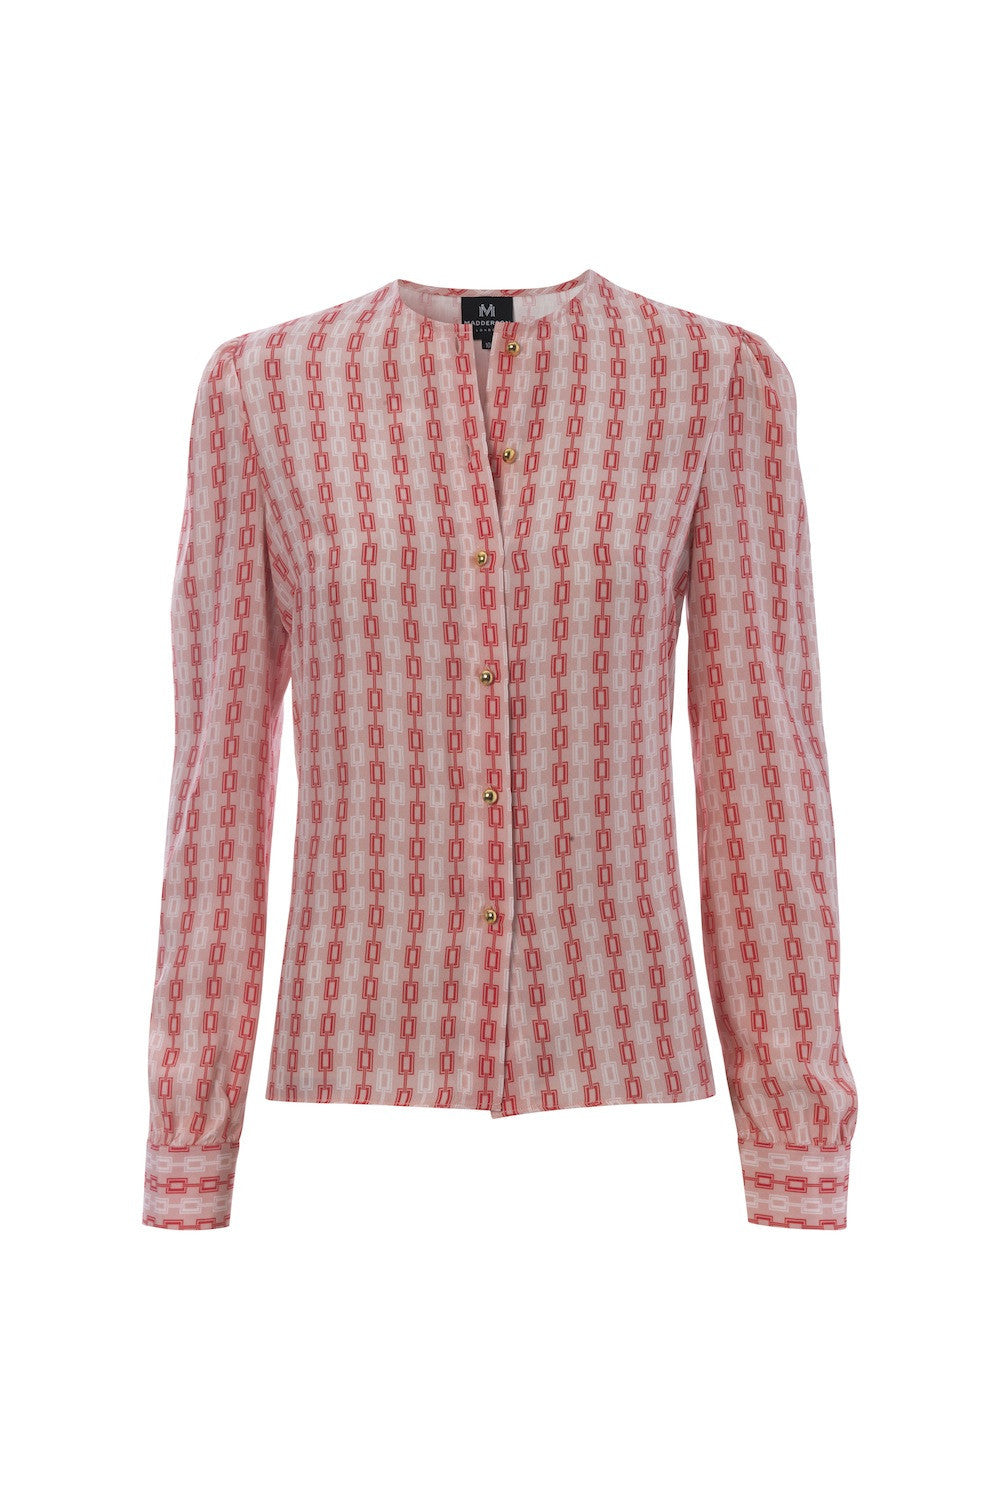 Mia Blouse - Pink - Womenswear Outlet - Madderson London